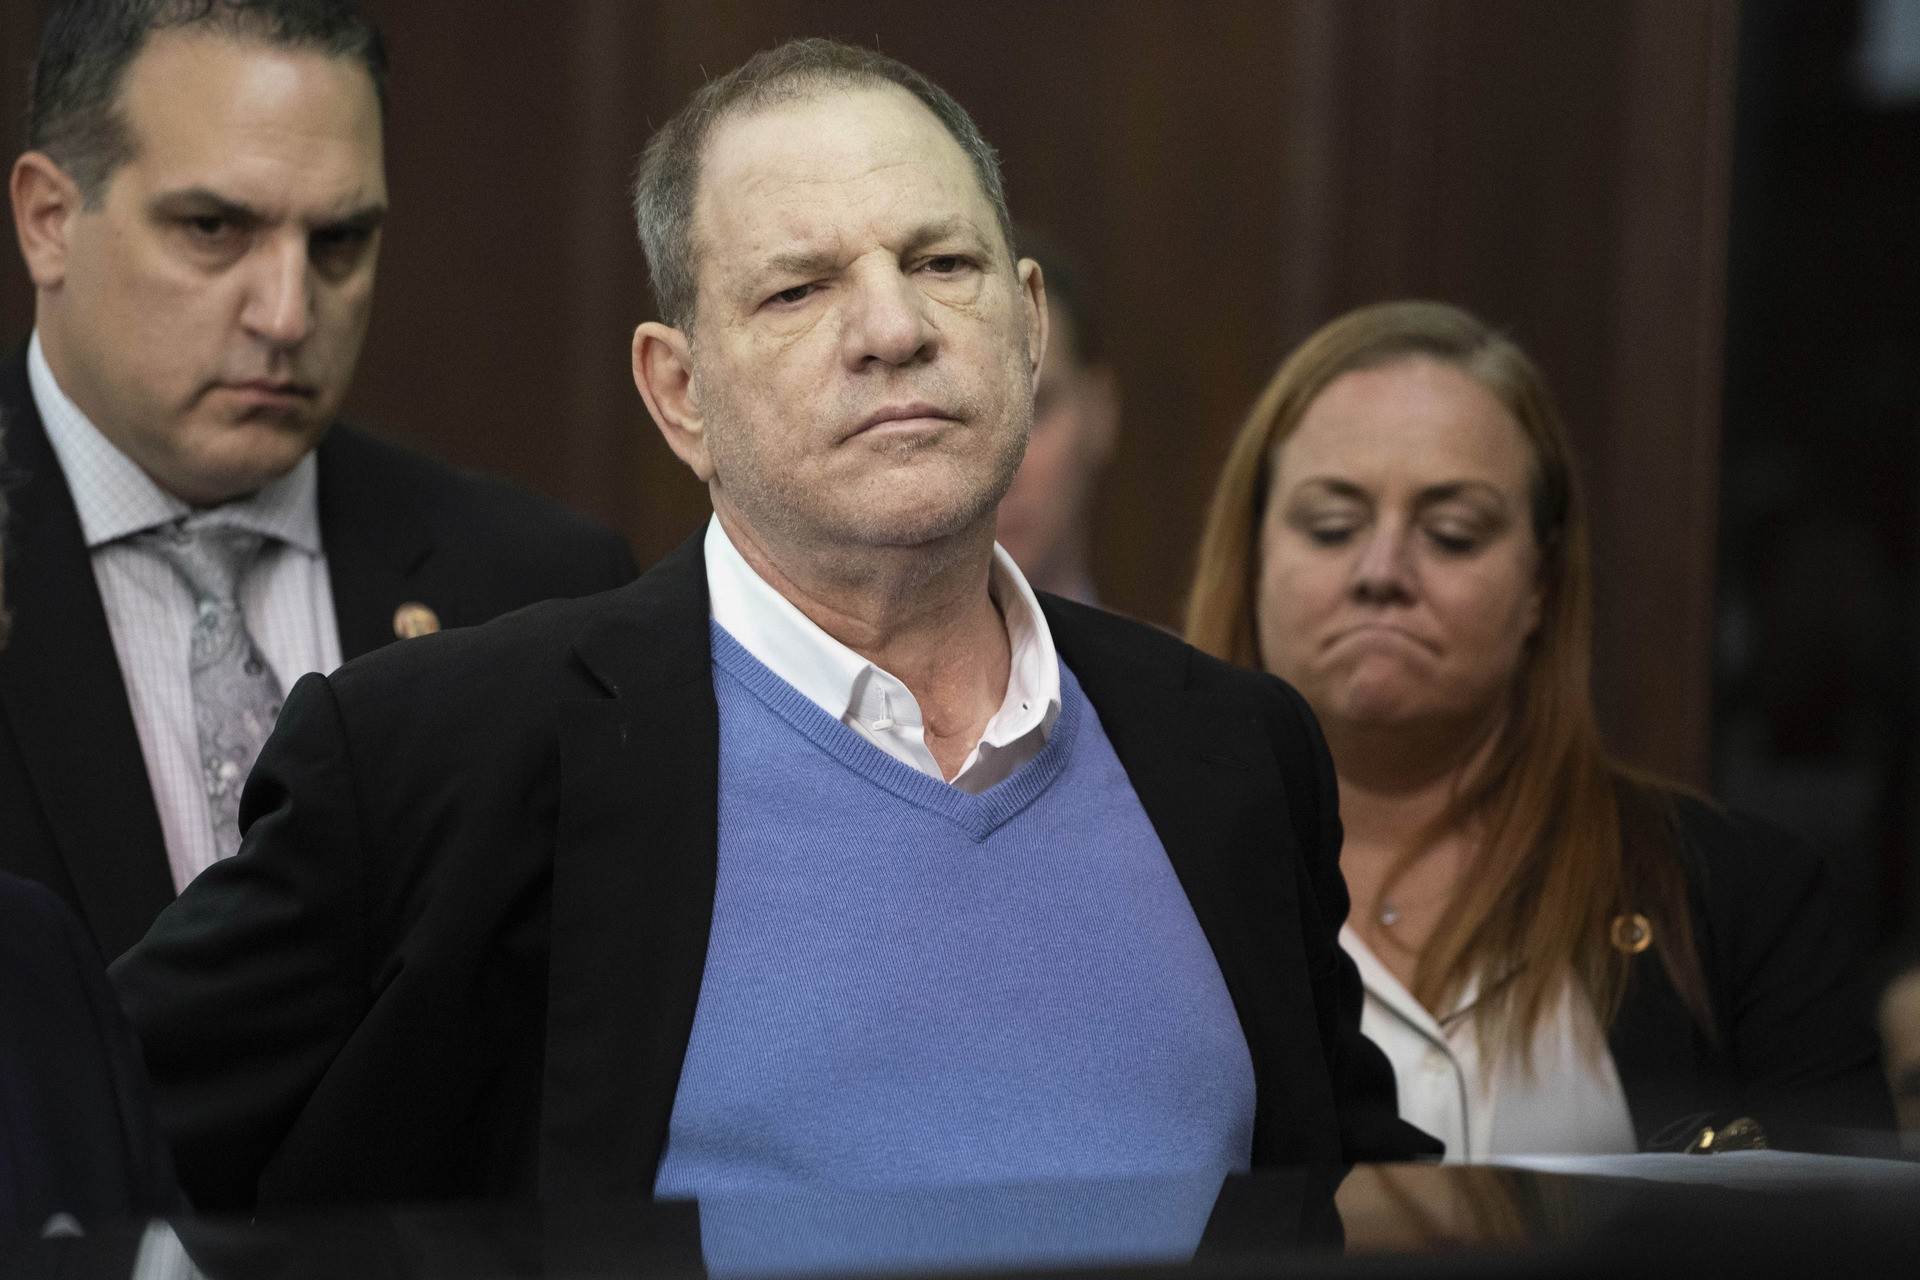 Harvey Weinstein Indicted on Multiple Rape Charges